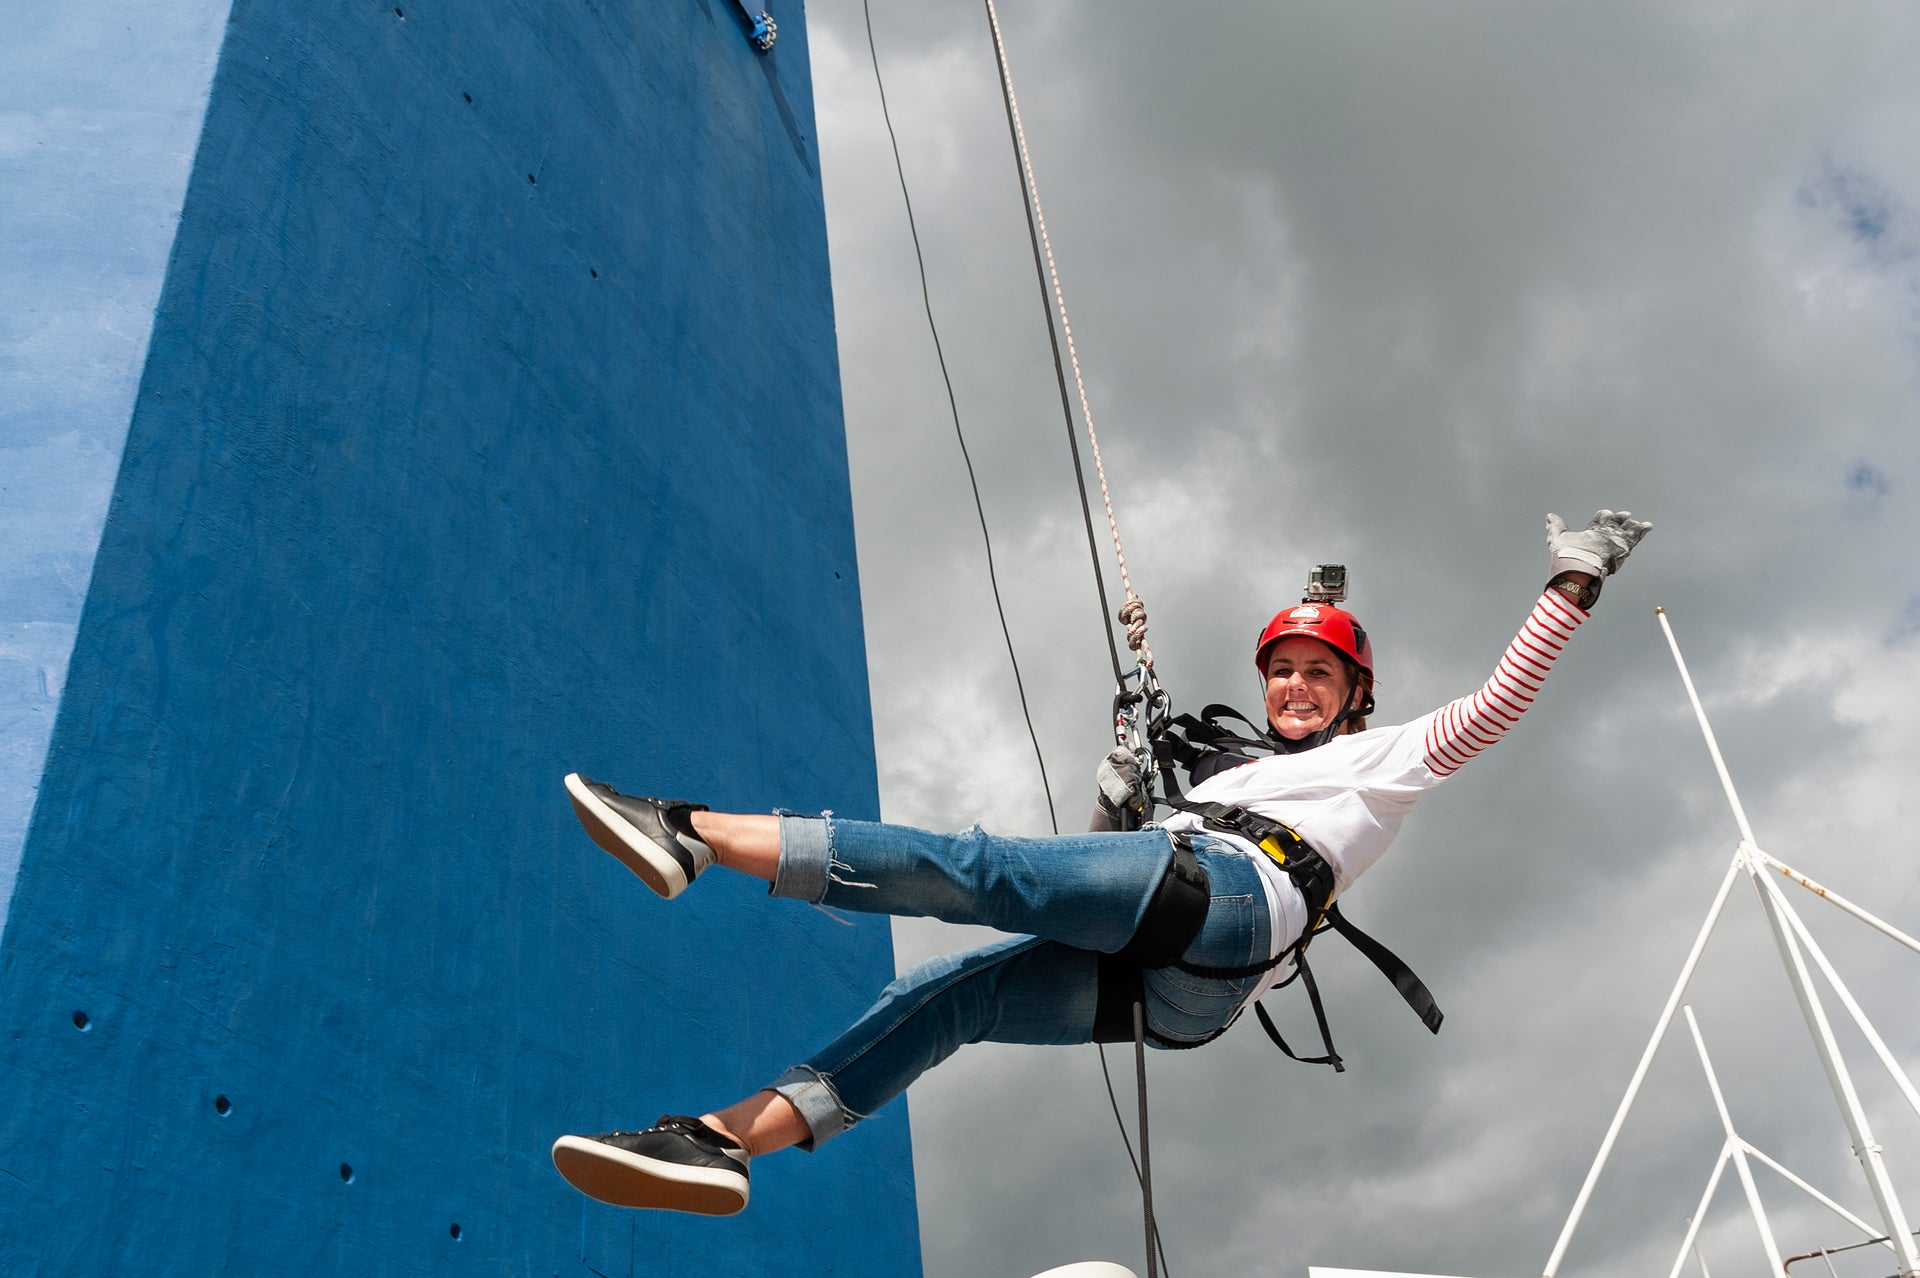 Sally on a harness waving to the camera as she abseils the Spinnaker Tower.